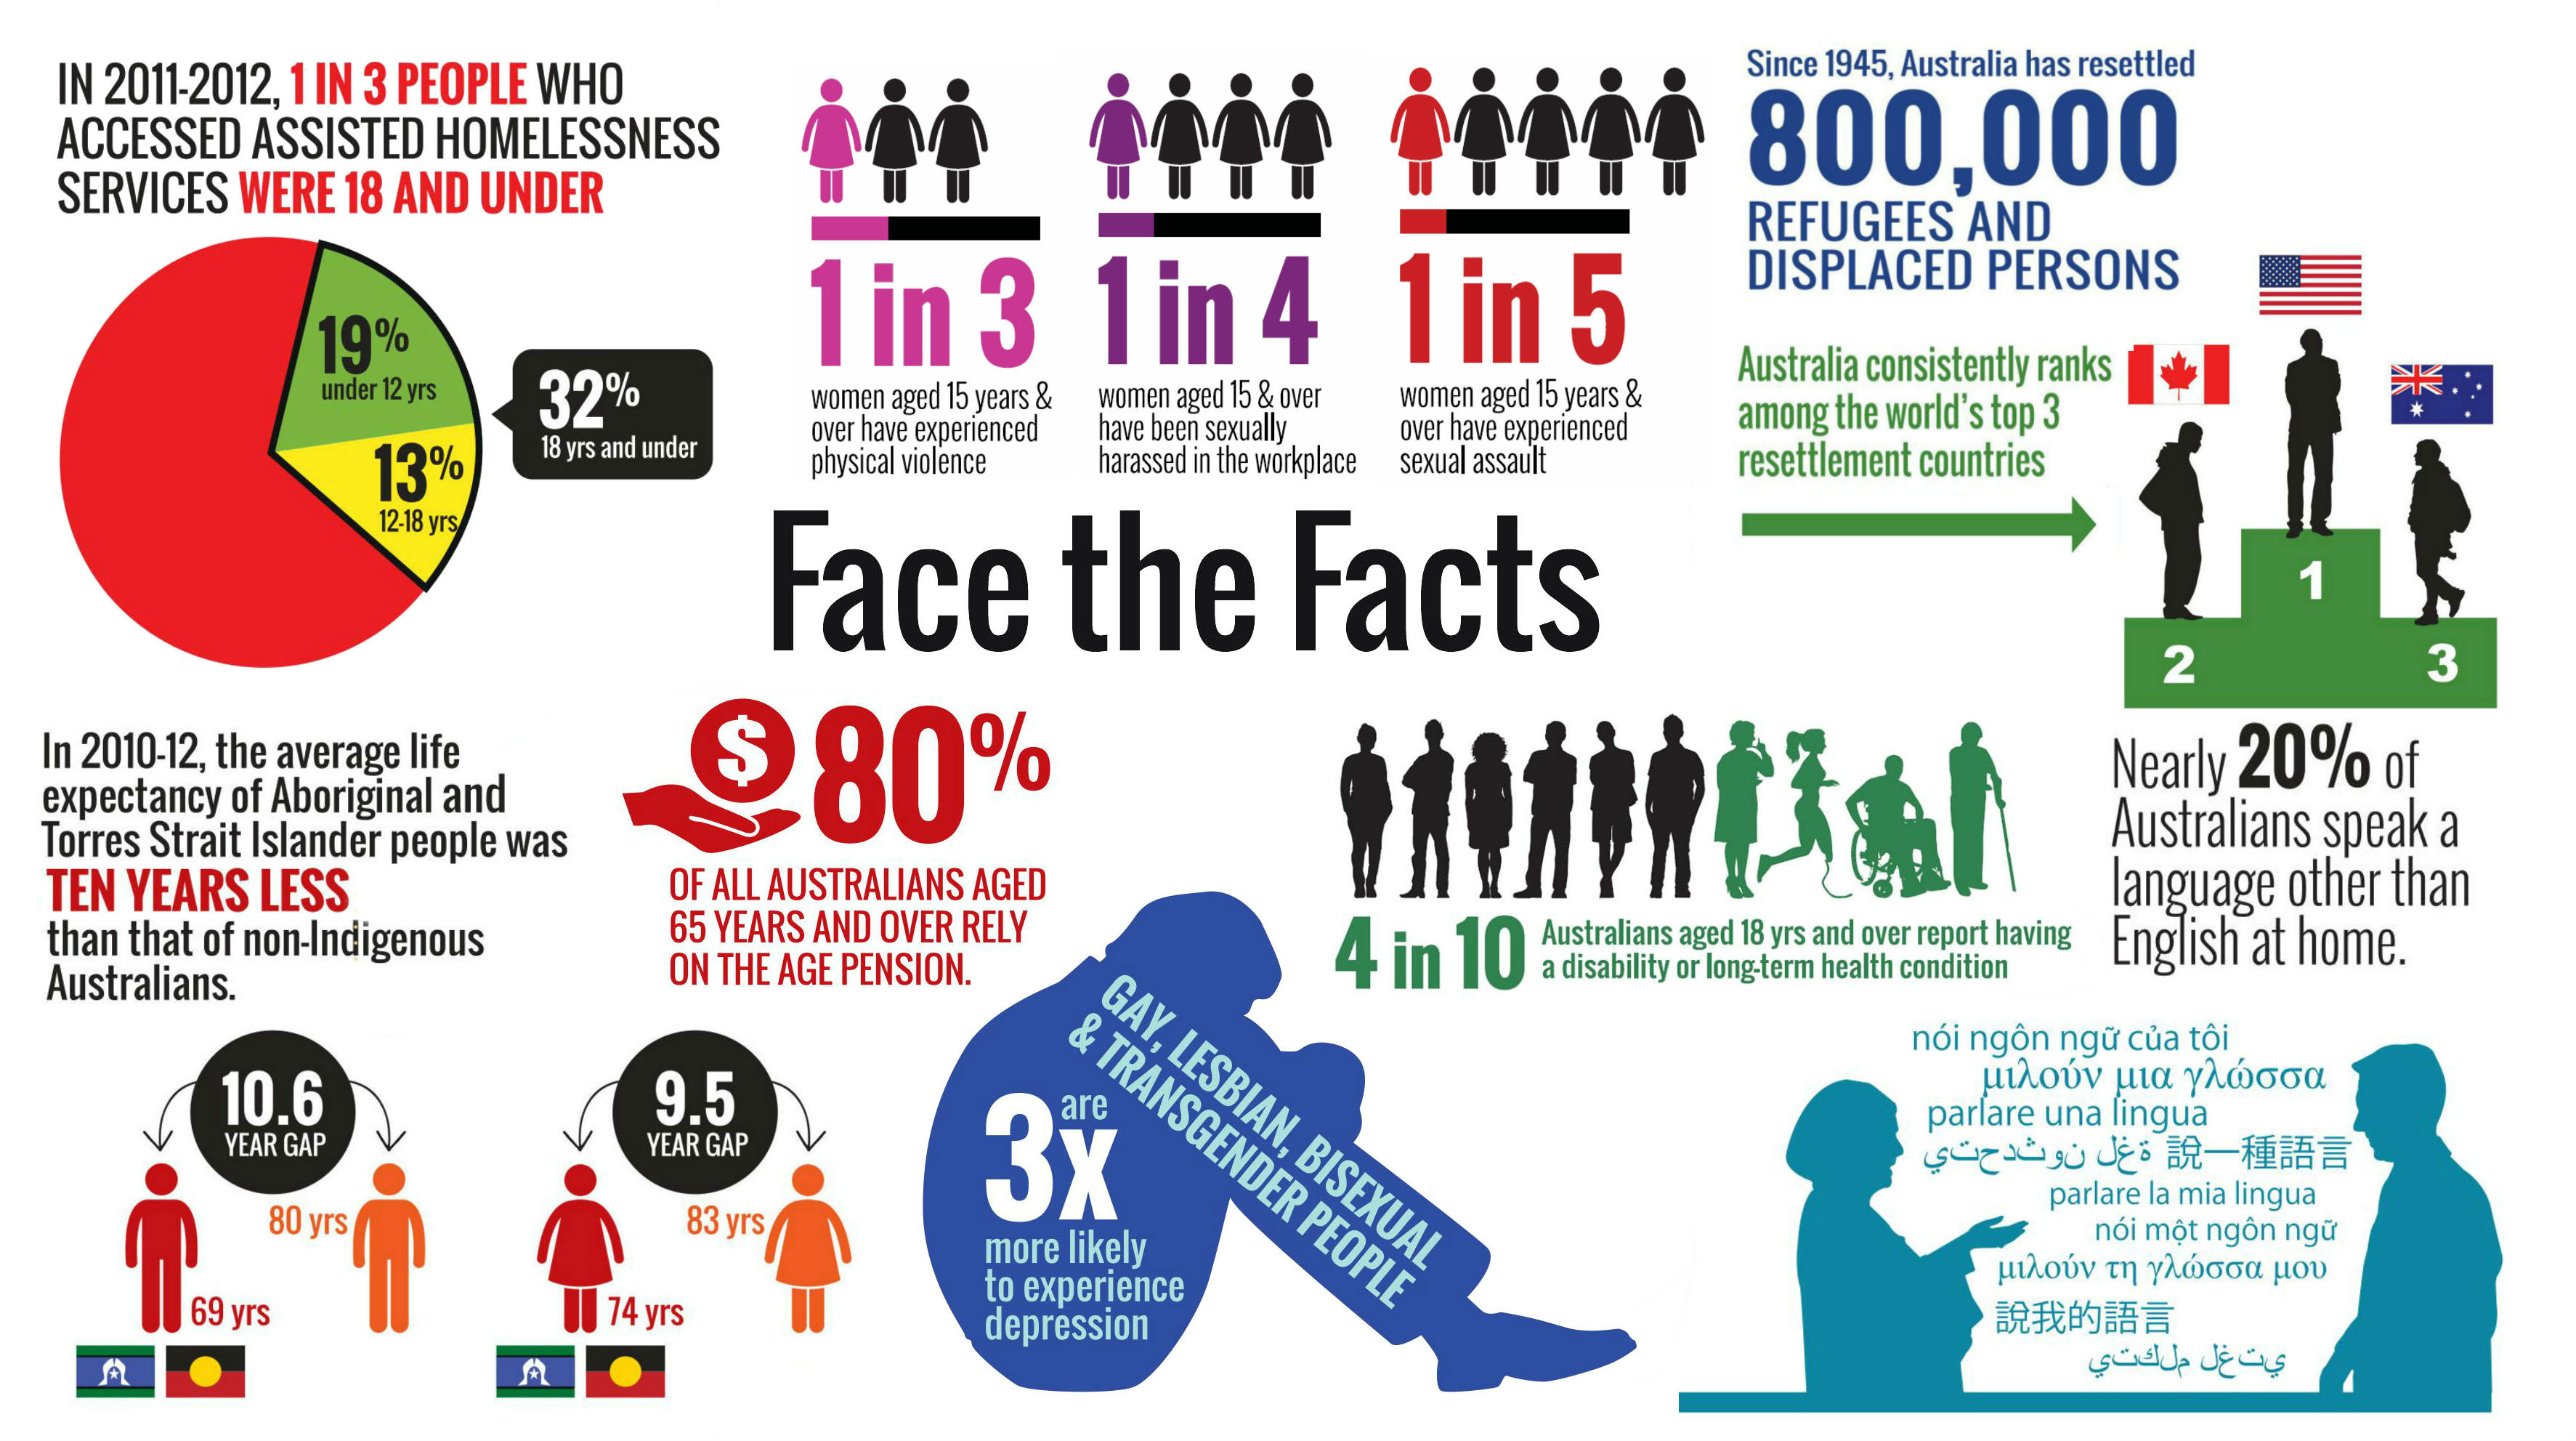 Face the facts 3 (correct aspect)